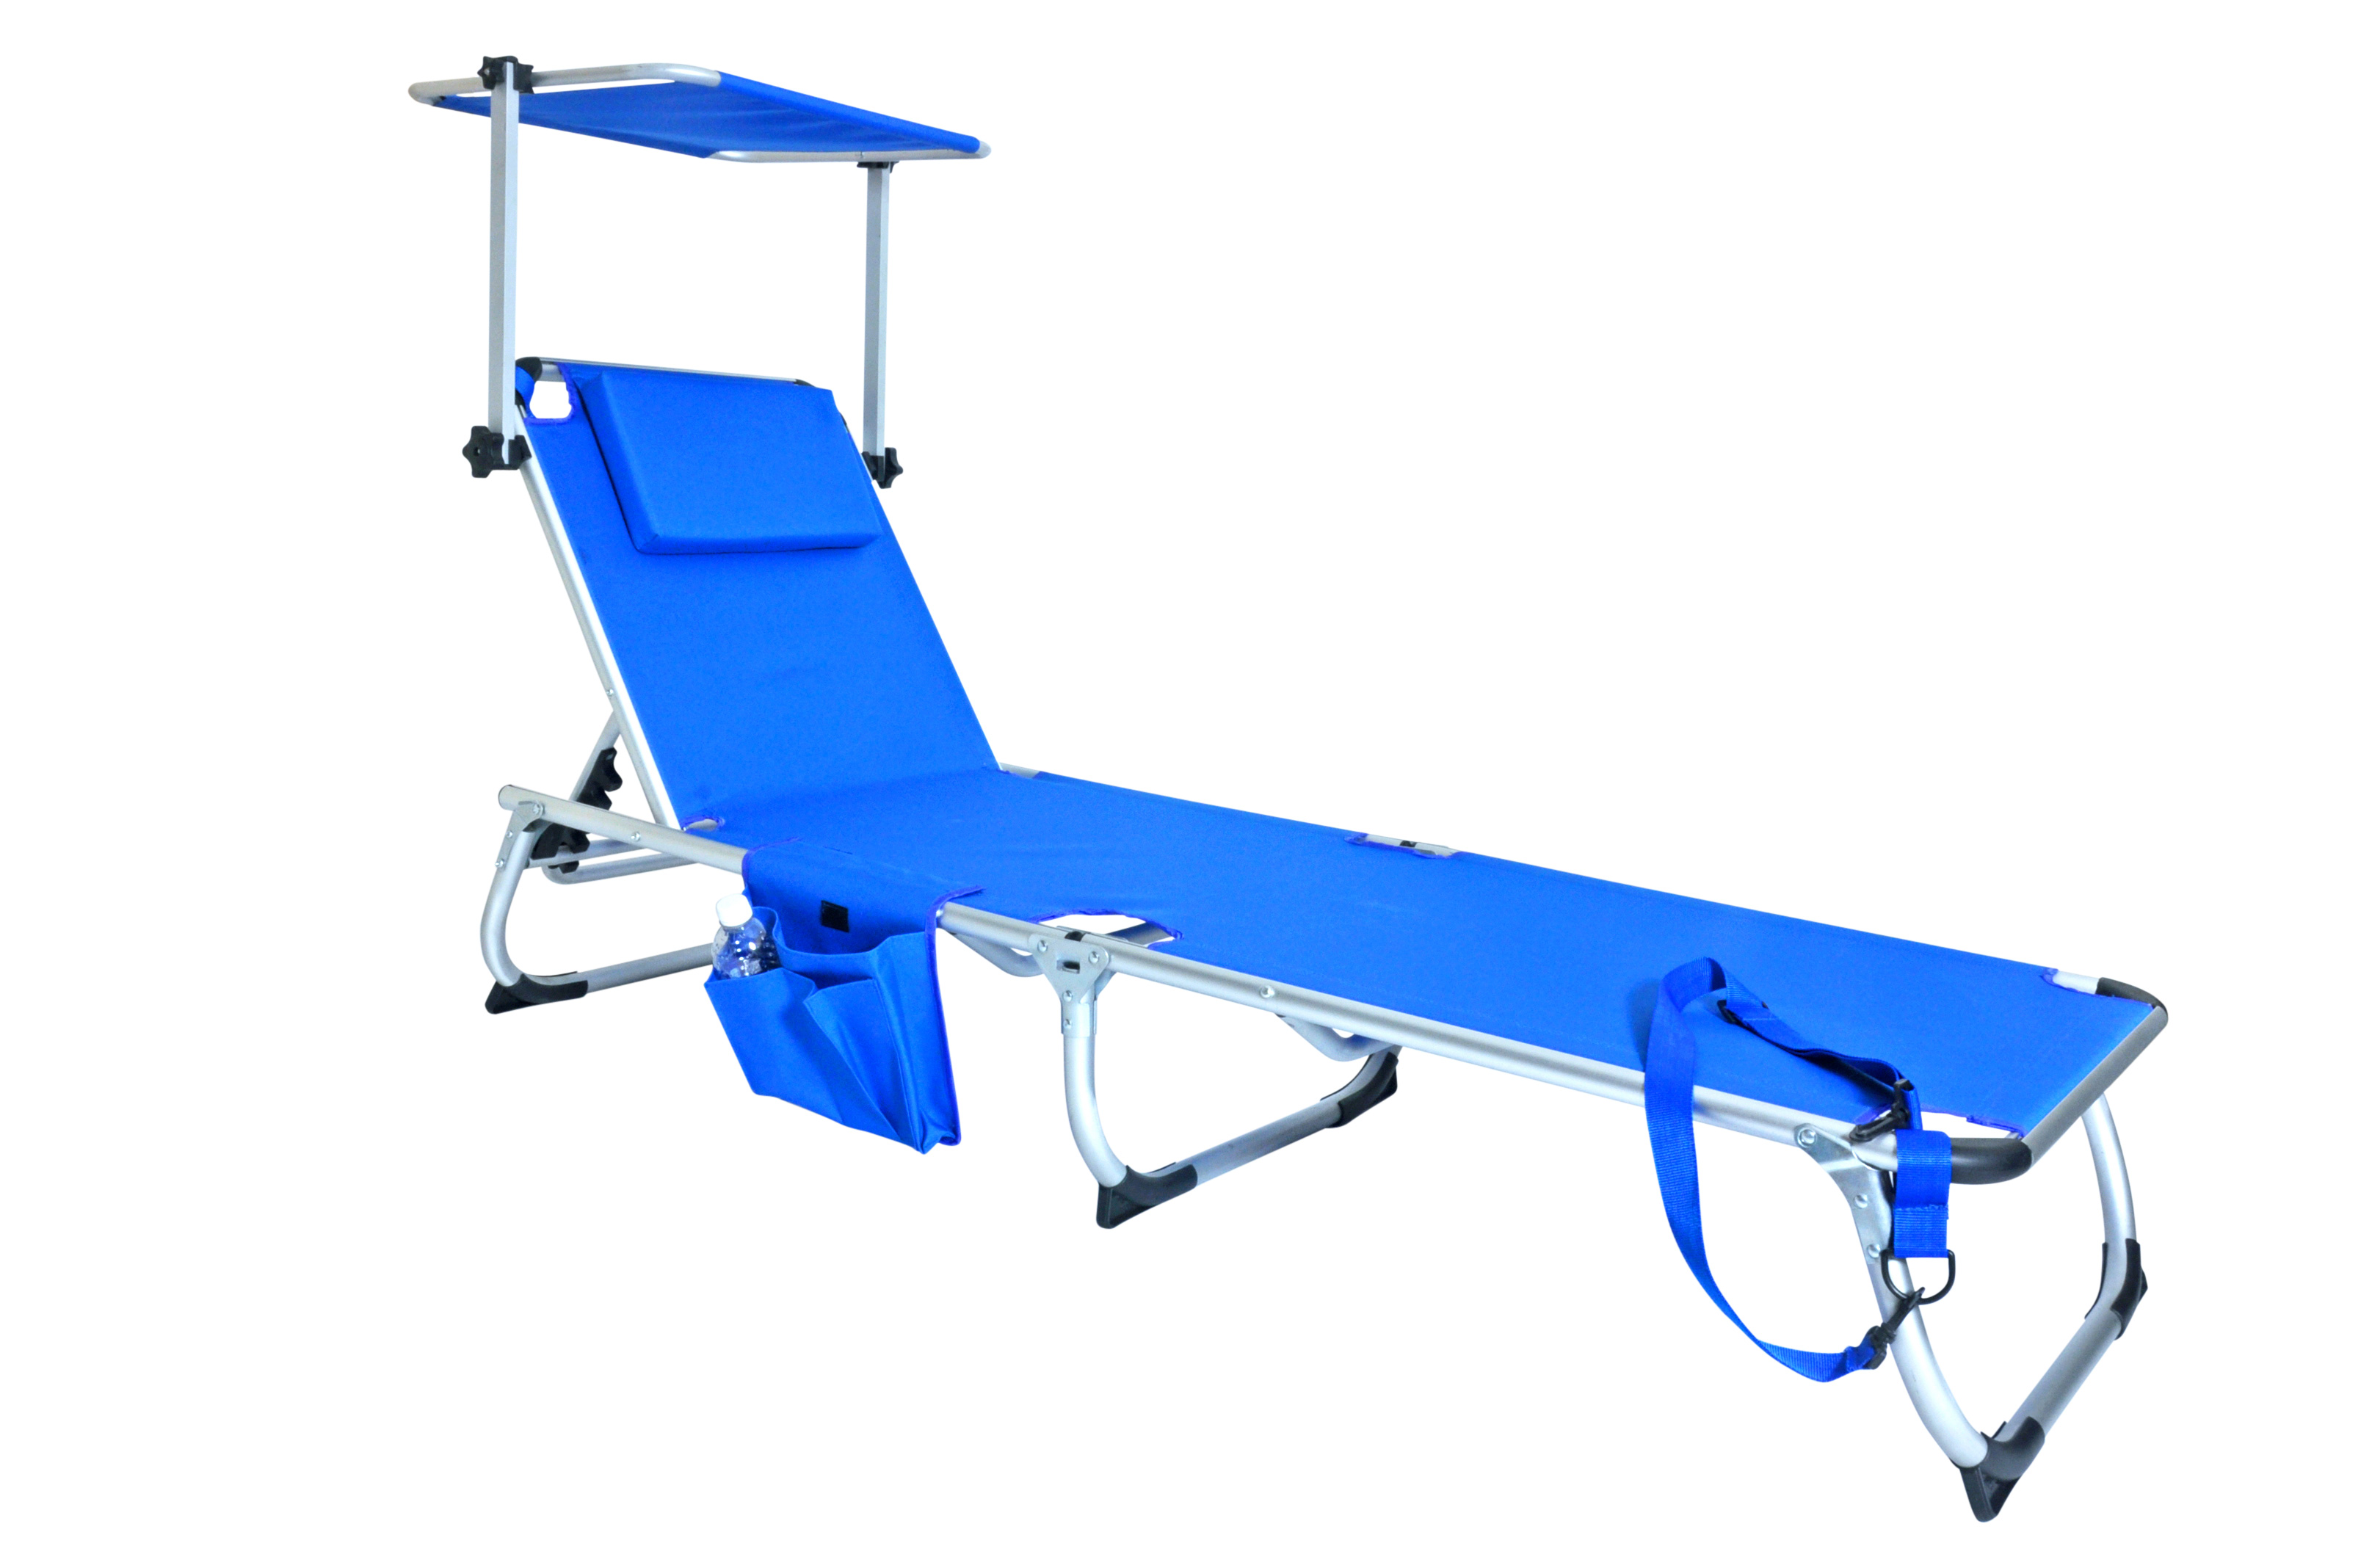 Deluxe 5 pos lay flat aluminum chaise lounger with for Chaise lounge canopy